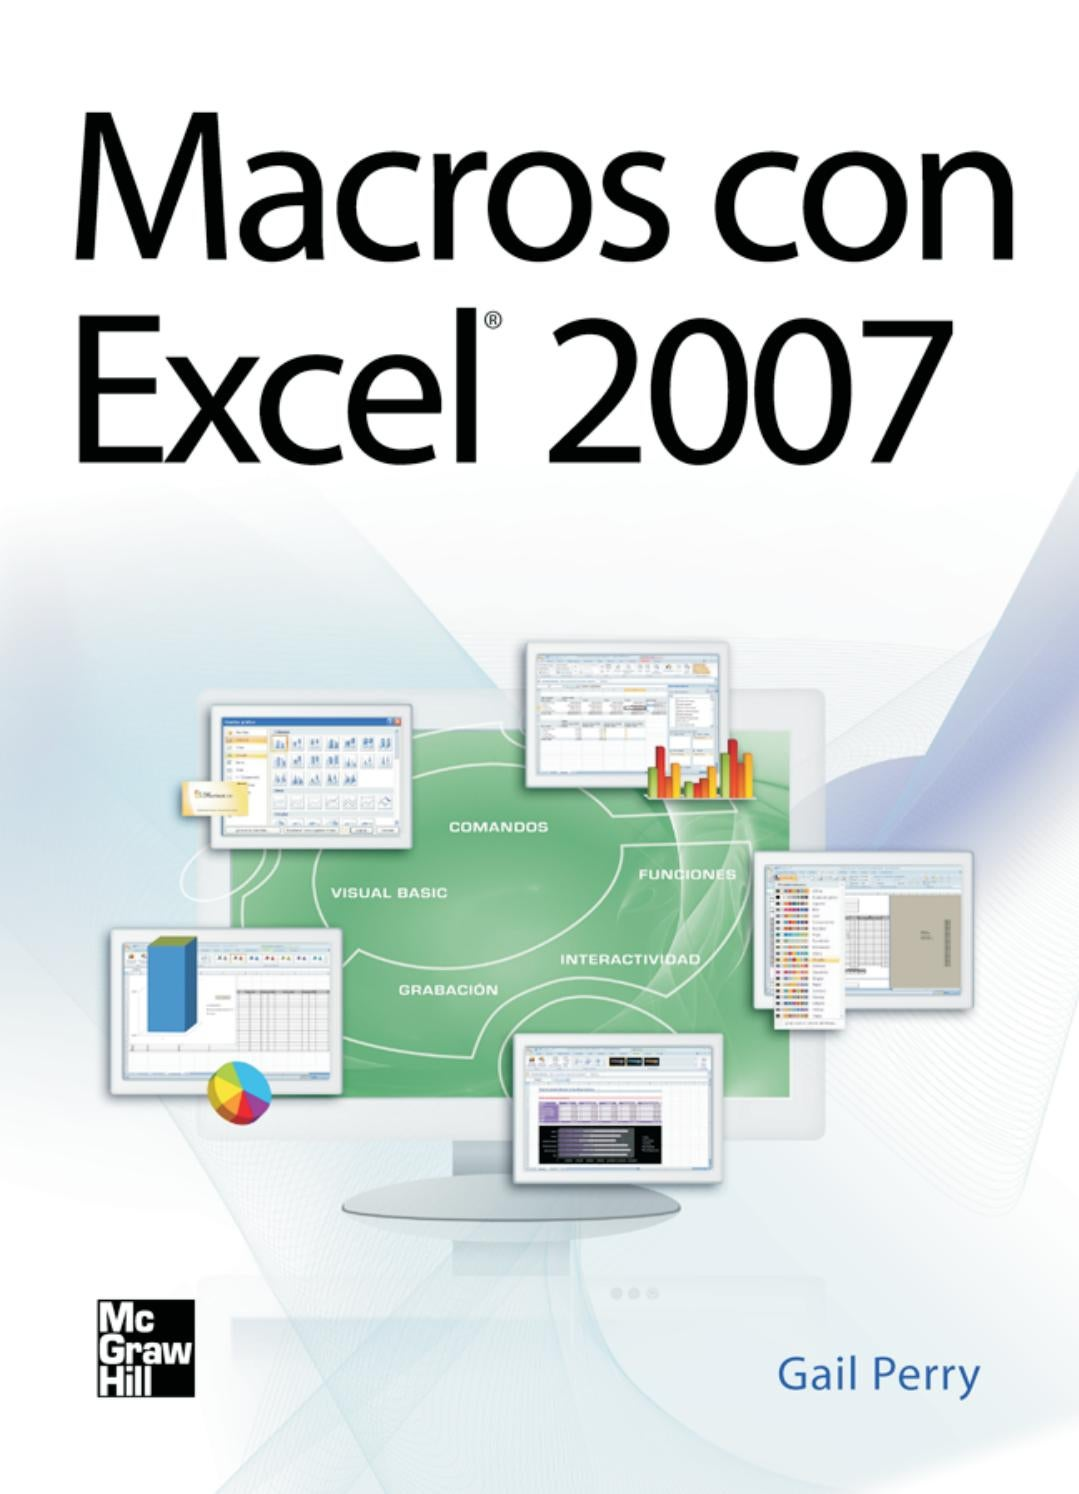 Macros con Excel 2007 - Gail Perry by Jorge - issuu